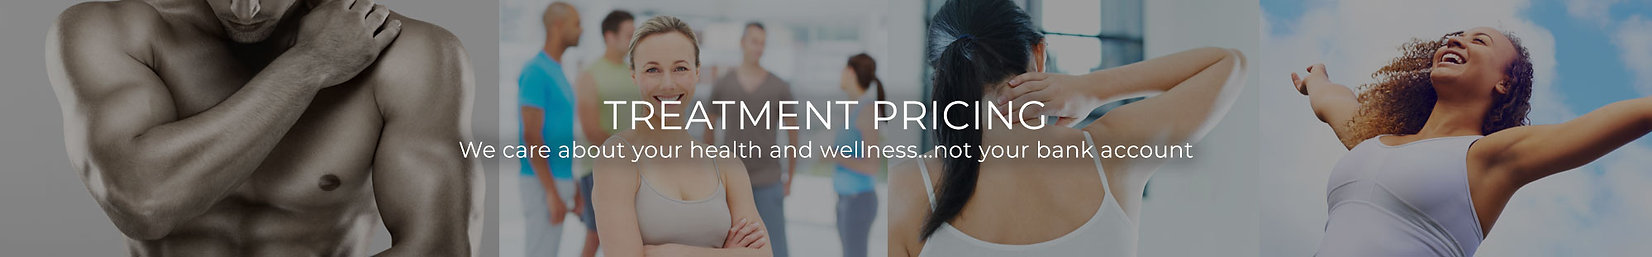 TREATMENT-pricing.jpg